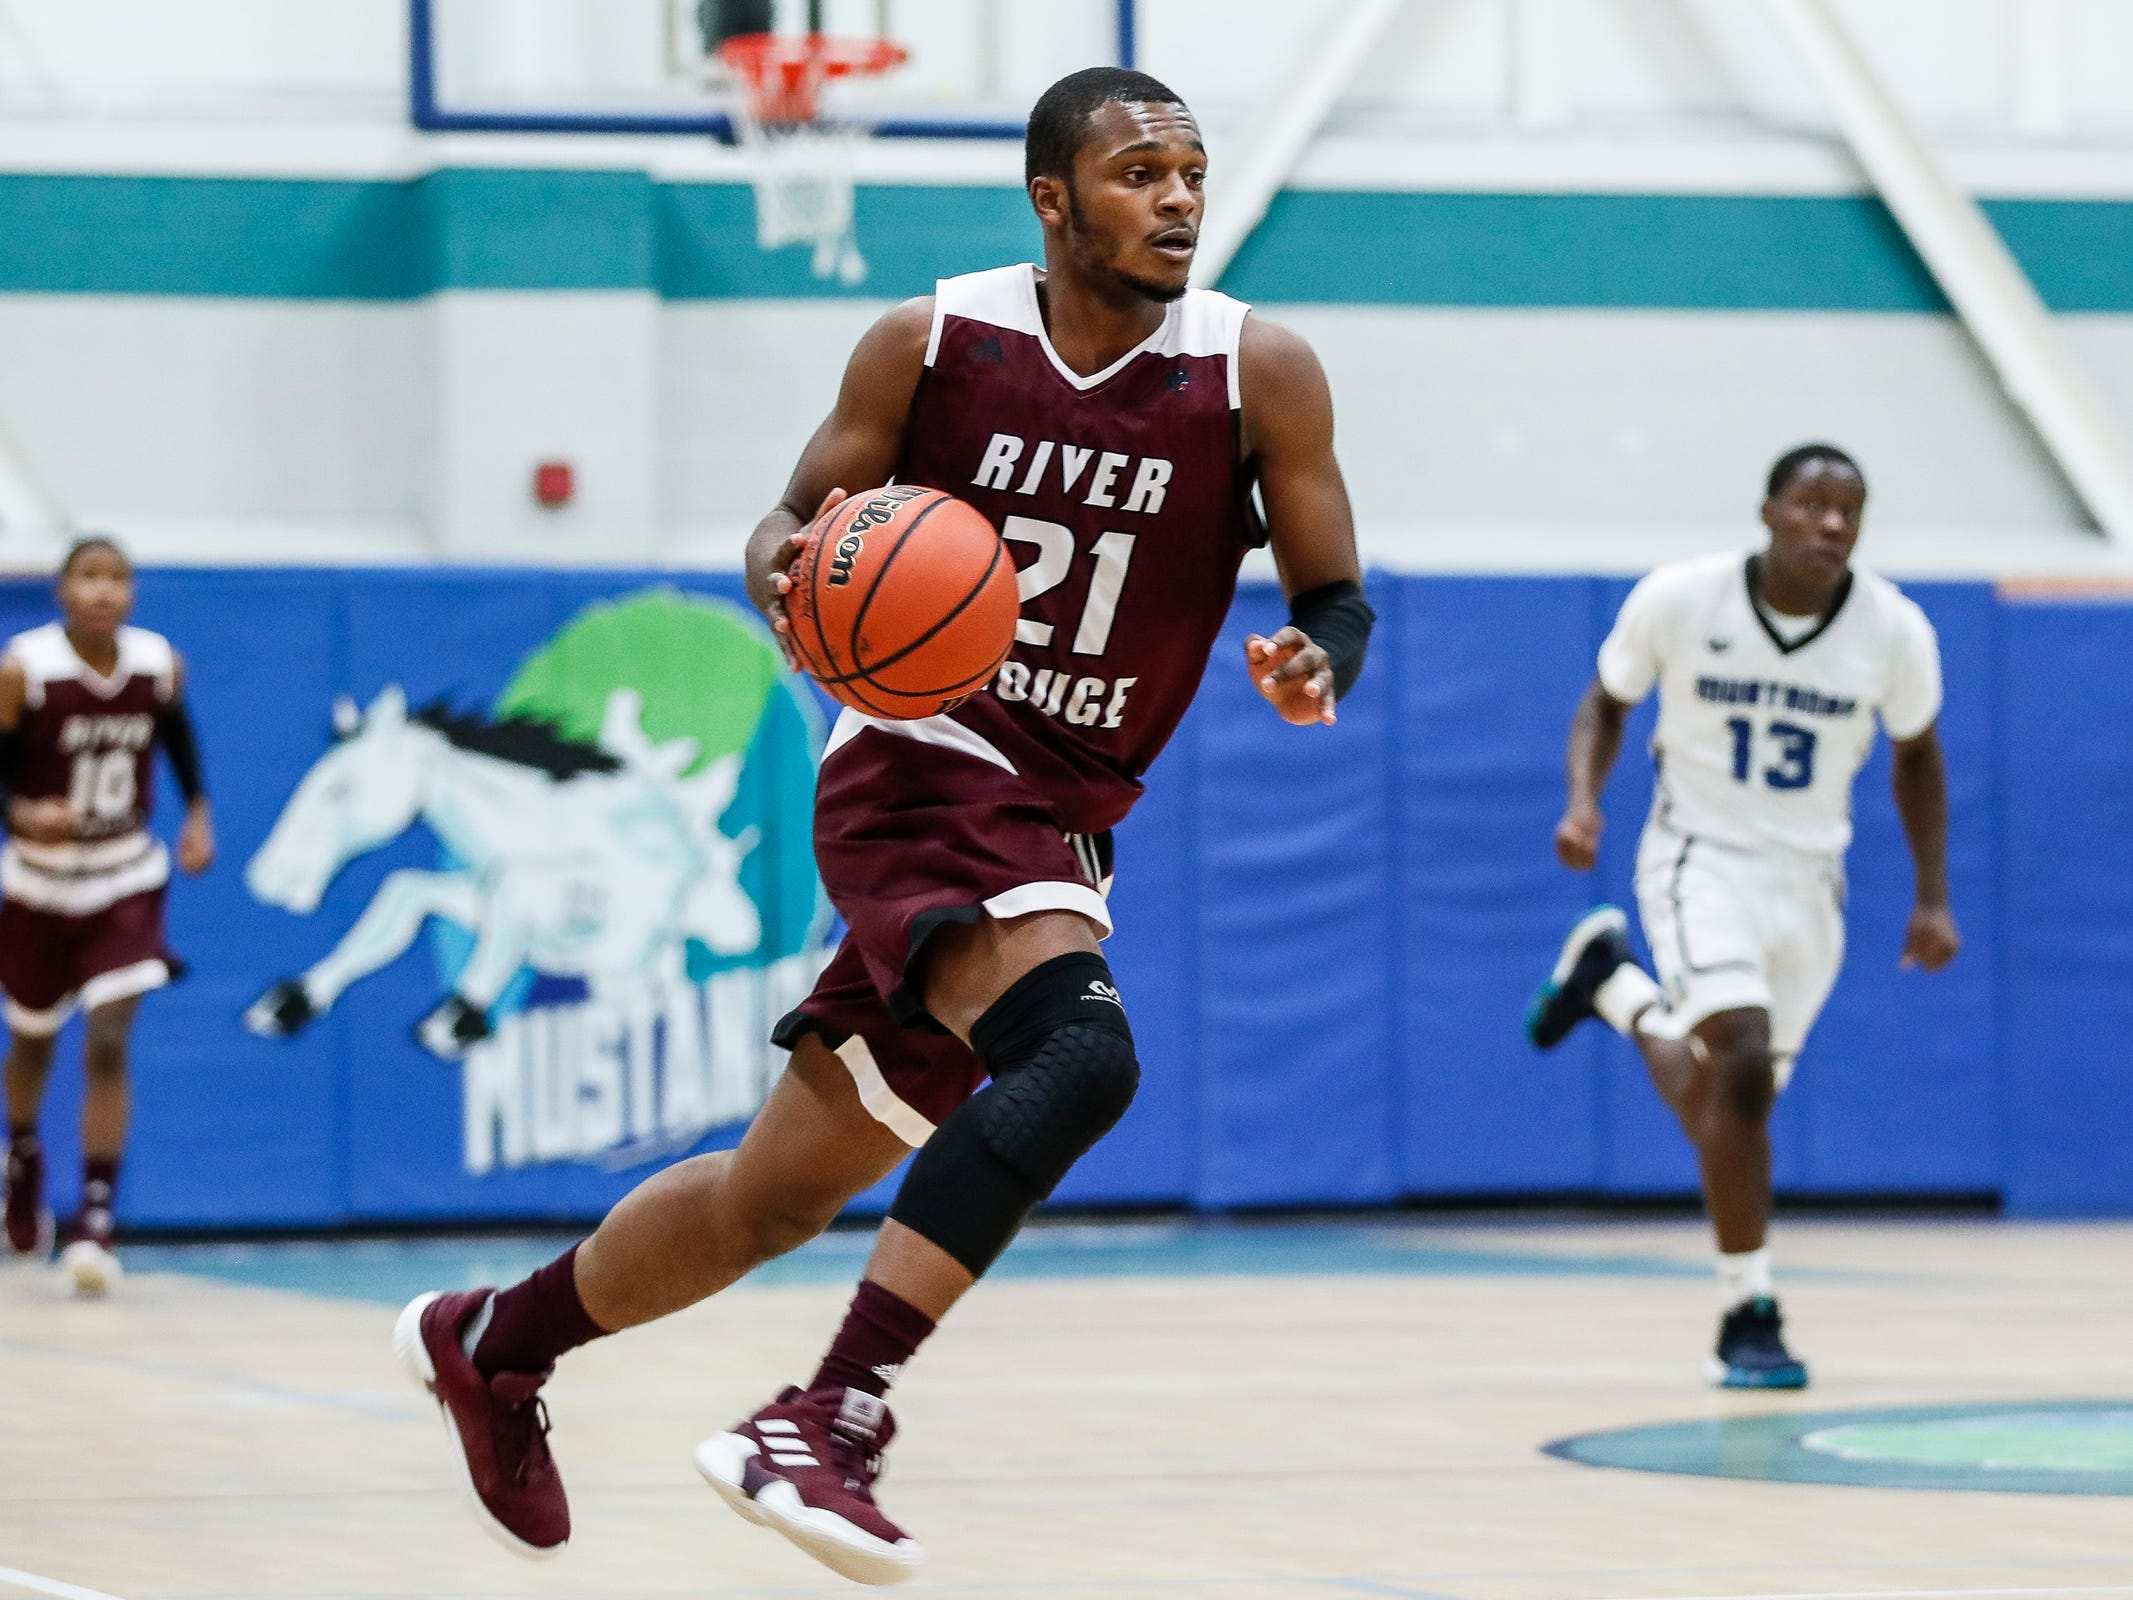 River Rouge's Nigel Colvin (21) dribbles against Henry Ford Academy: School for Creative Studies during first half at the A. Alfred Taubman Center For Design Education in Detroit, Tuesday, Jan. 8, 2019.